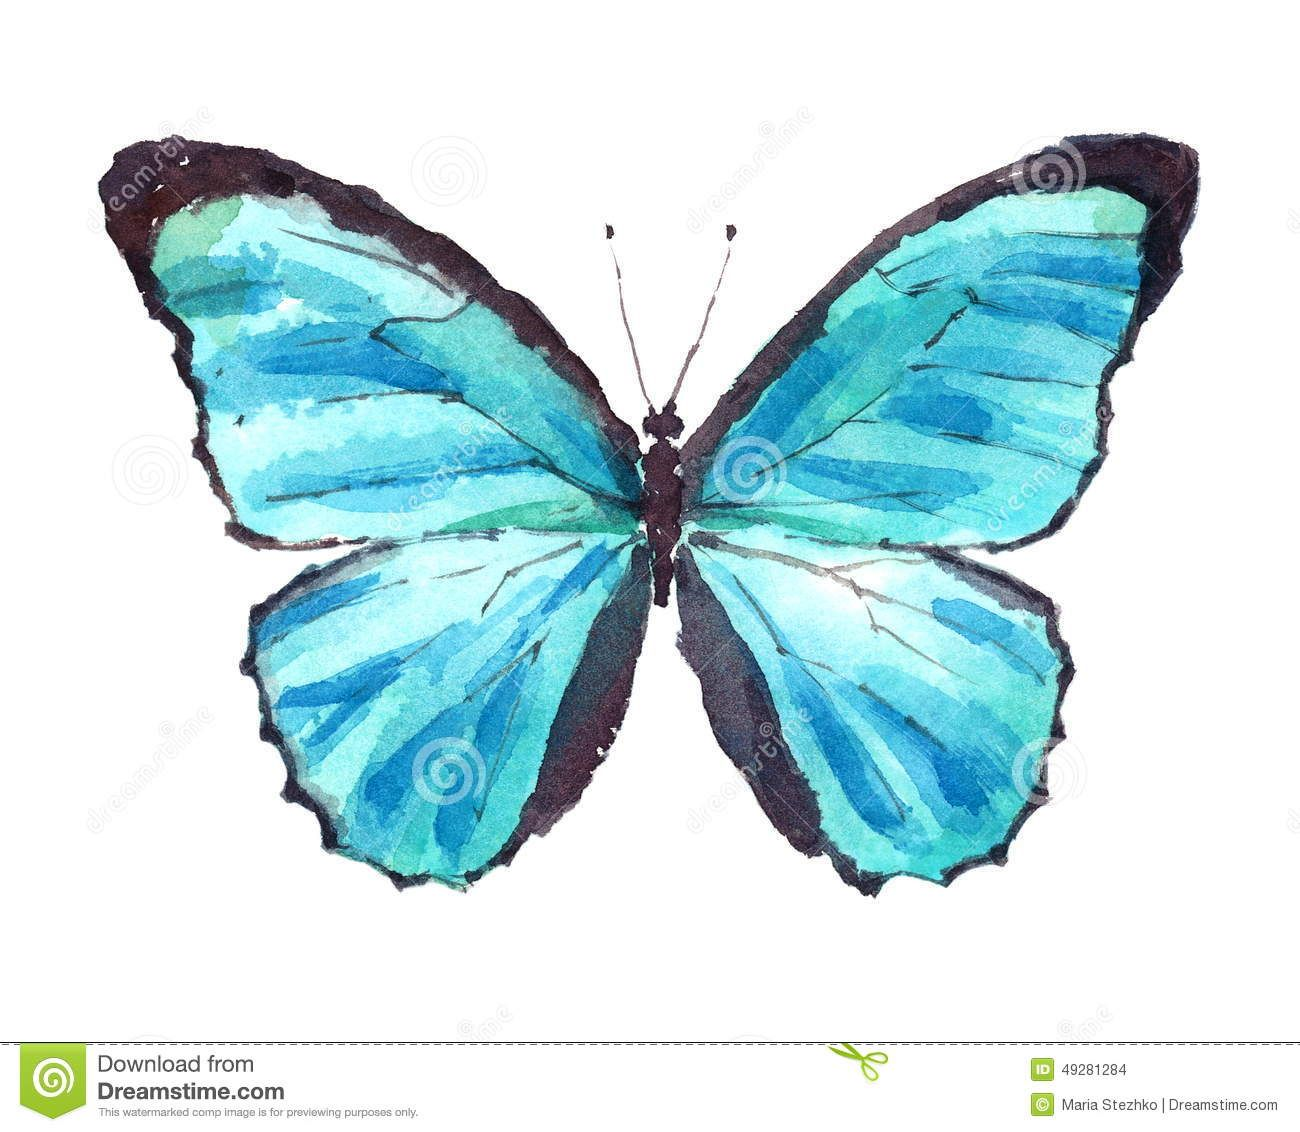 1300x1132 Blue Morpho Butterfly Watercolor Hand Drawn Illustration Insect